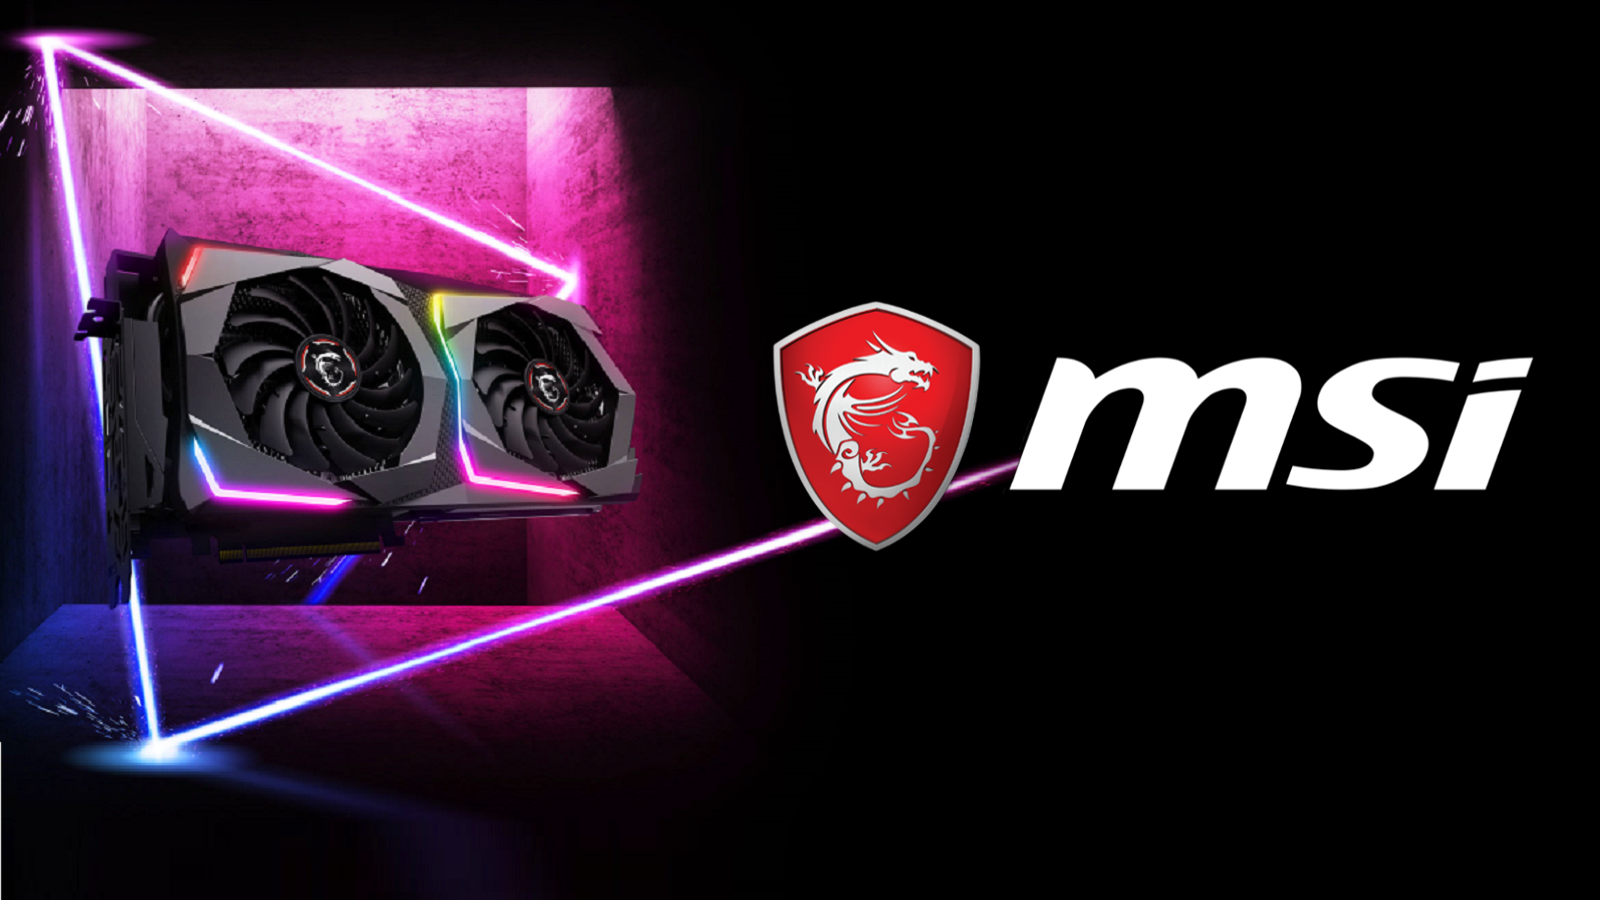 Обзор и тест видеокарты MSI GeForce RTX 2070 Gaming Z 8G